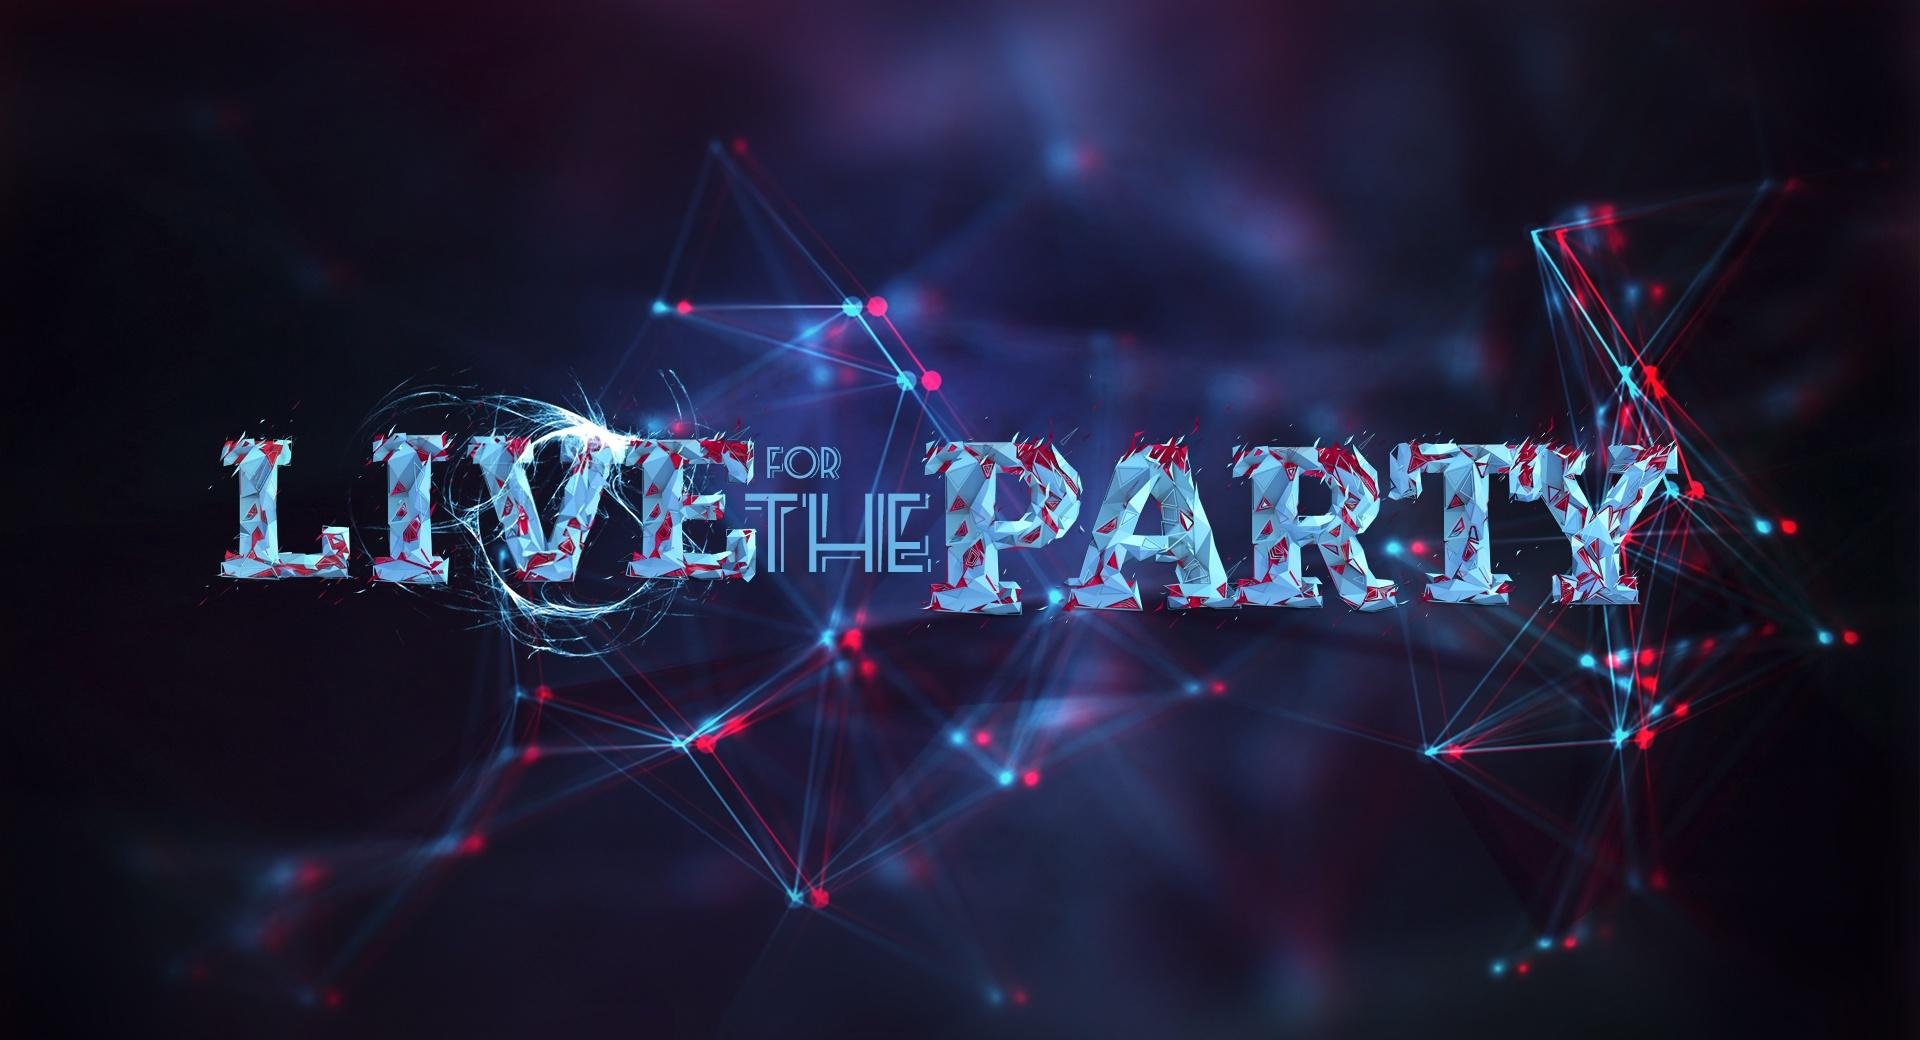 Live For The Party wallpapers HD quality